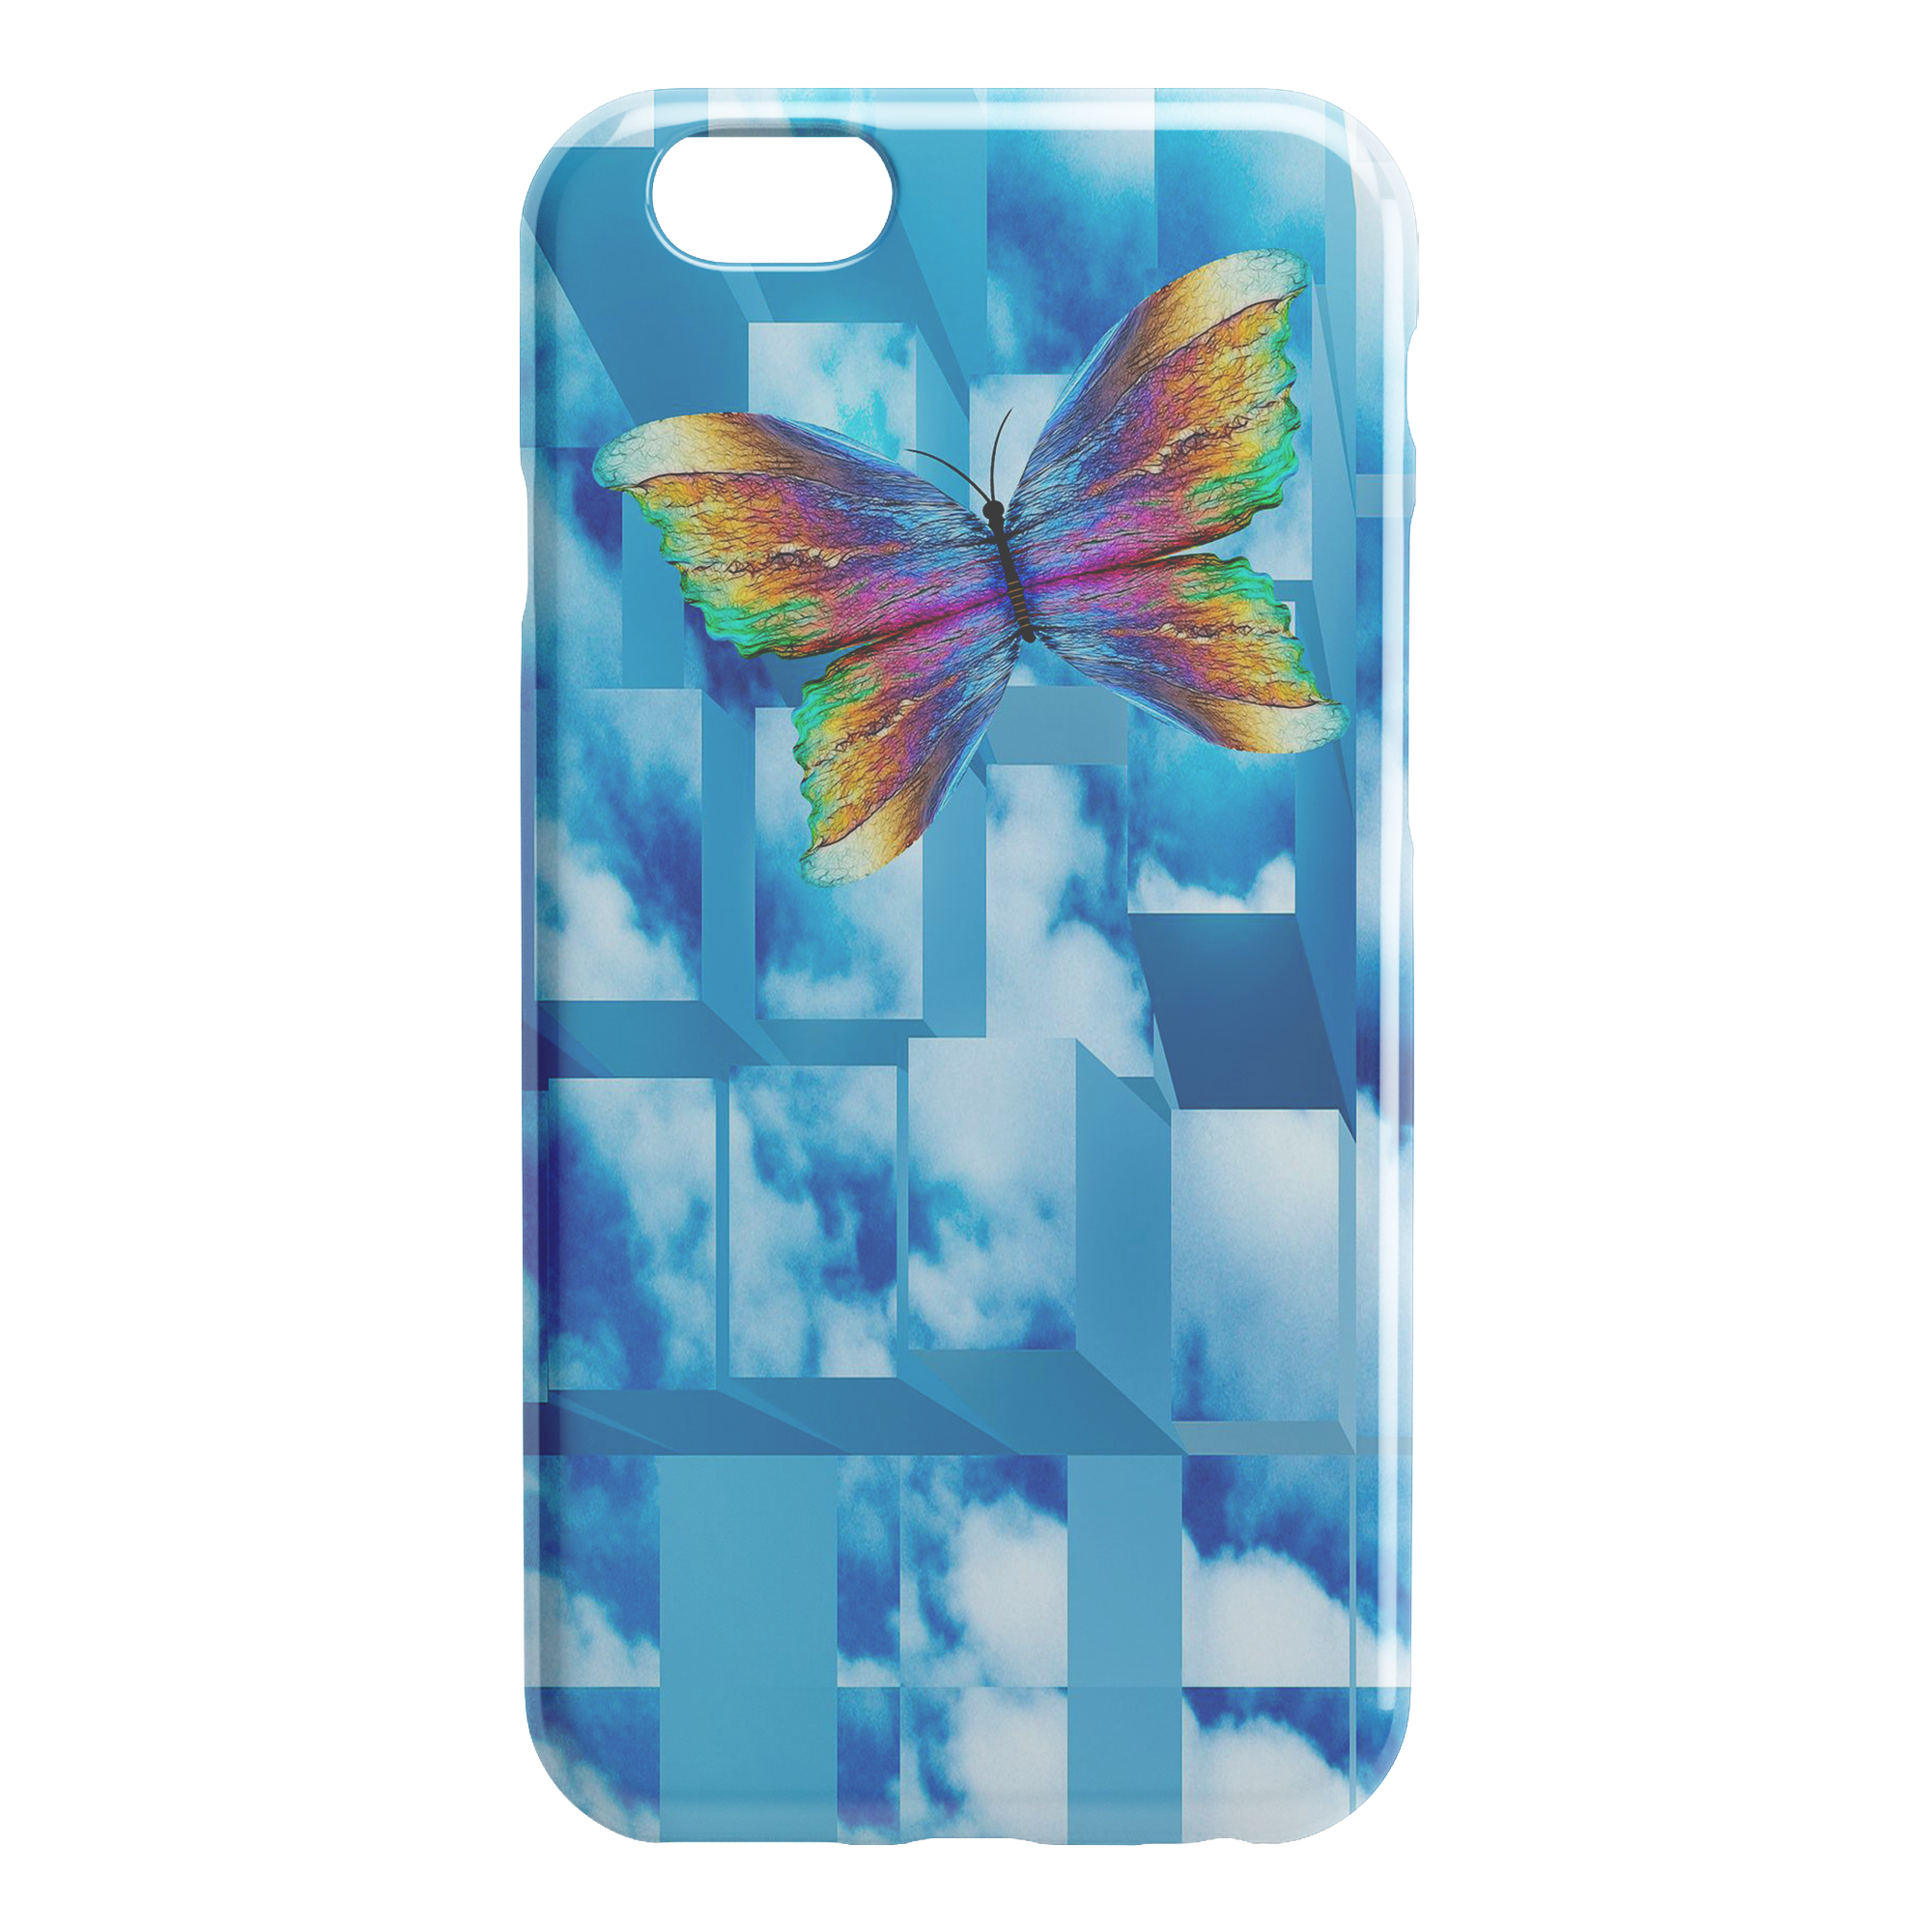 Butterfly 2 - iPhone case